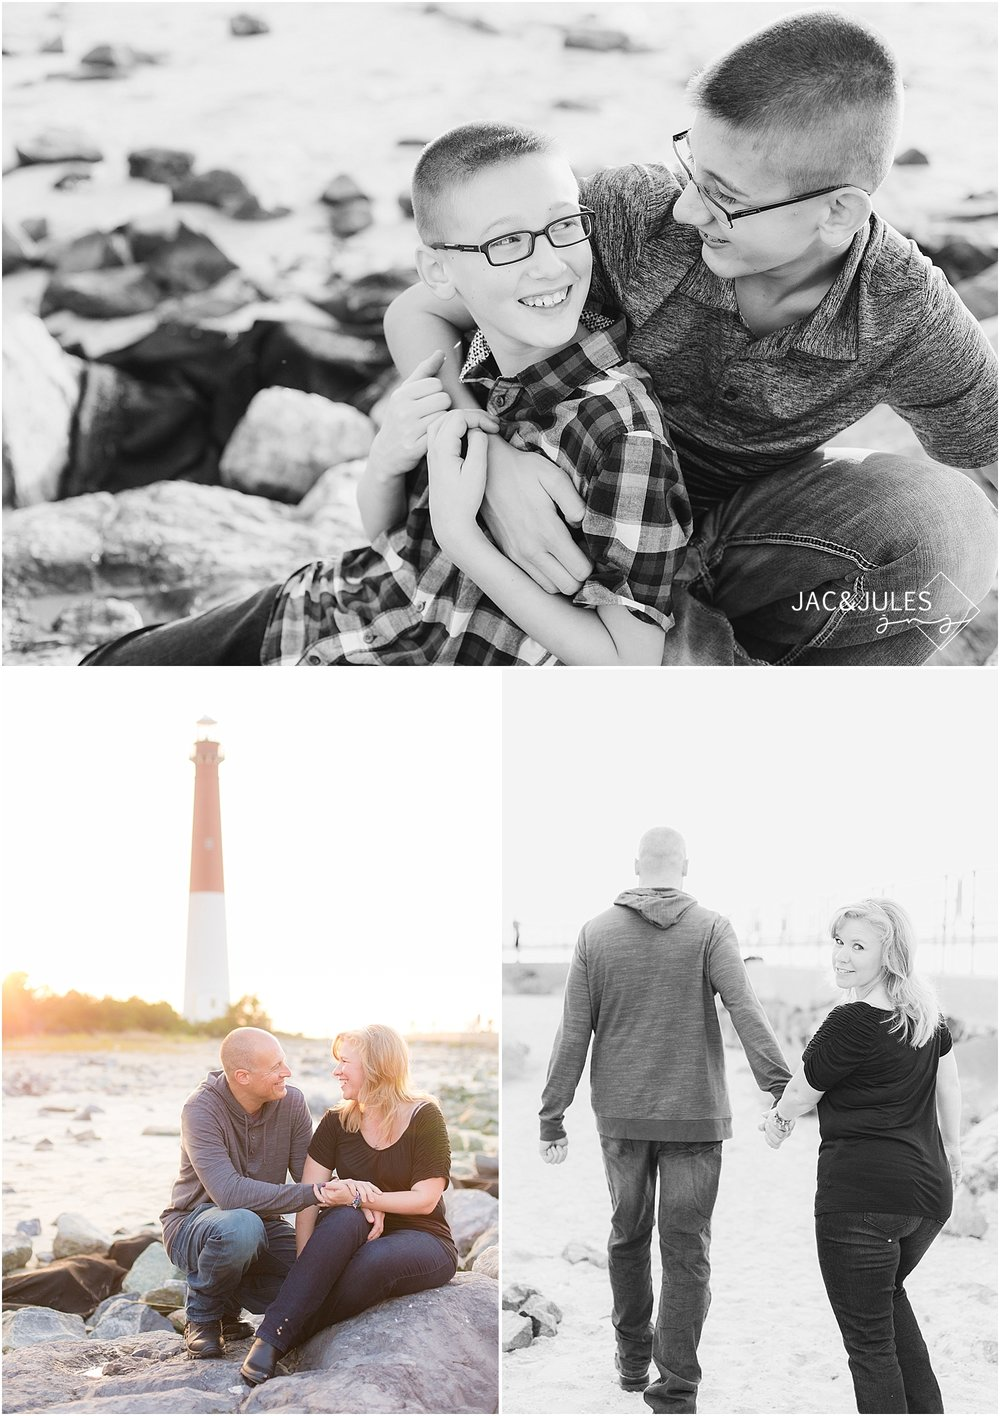 jacnjules photographs family at barnegat lighthouse in LBI